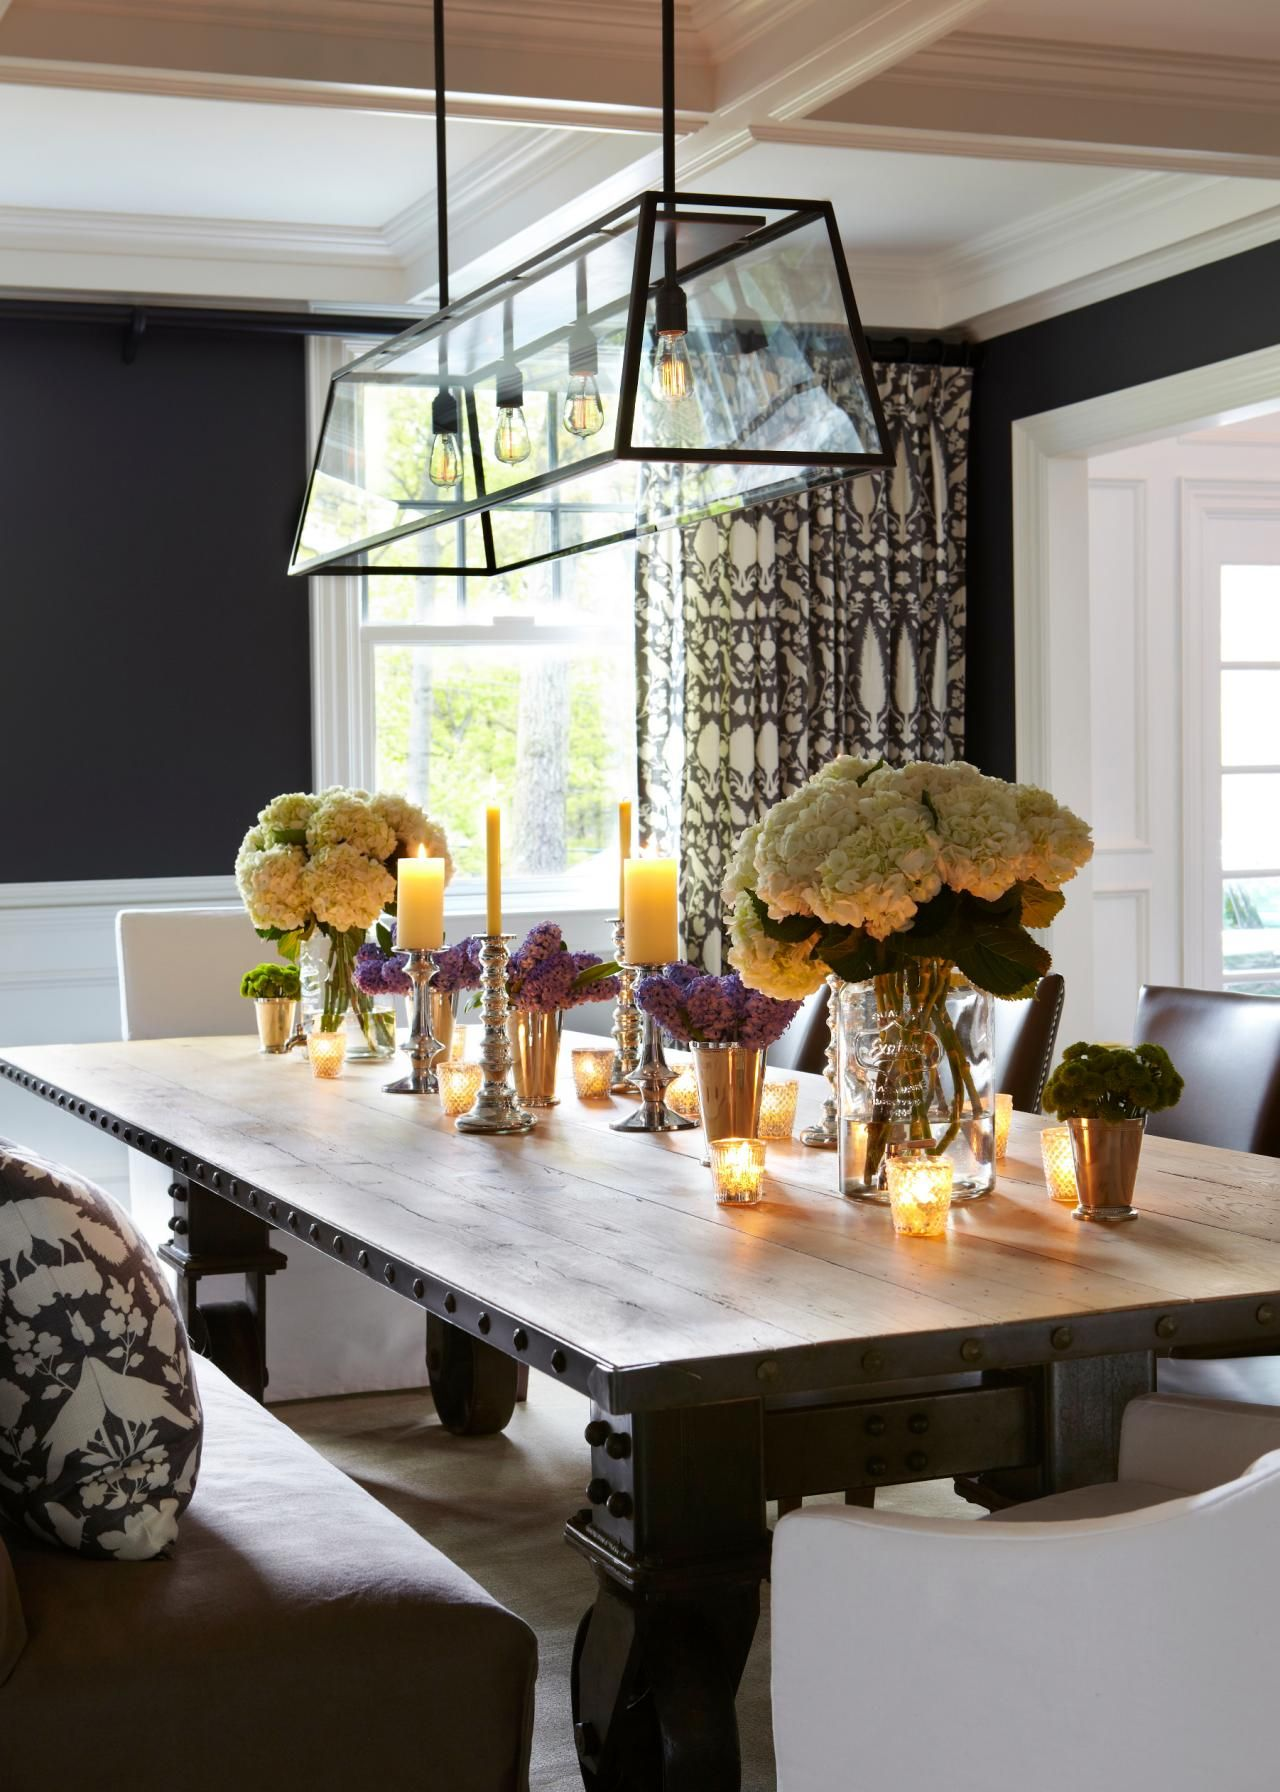 A large harvest table is bold focal point in this formal